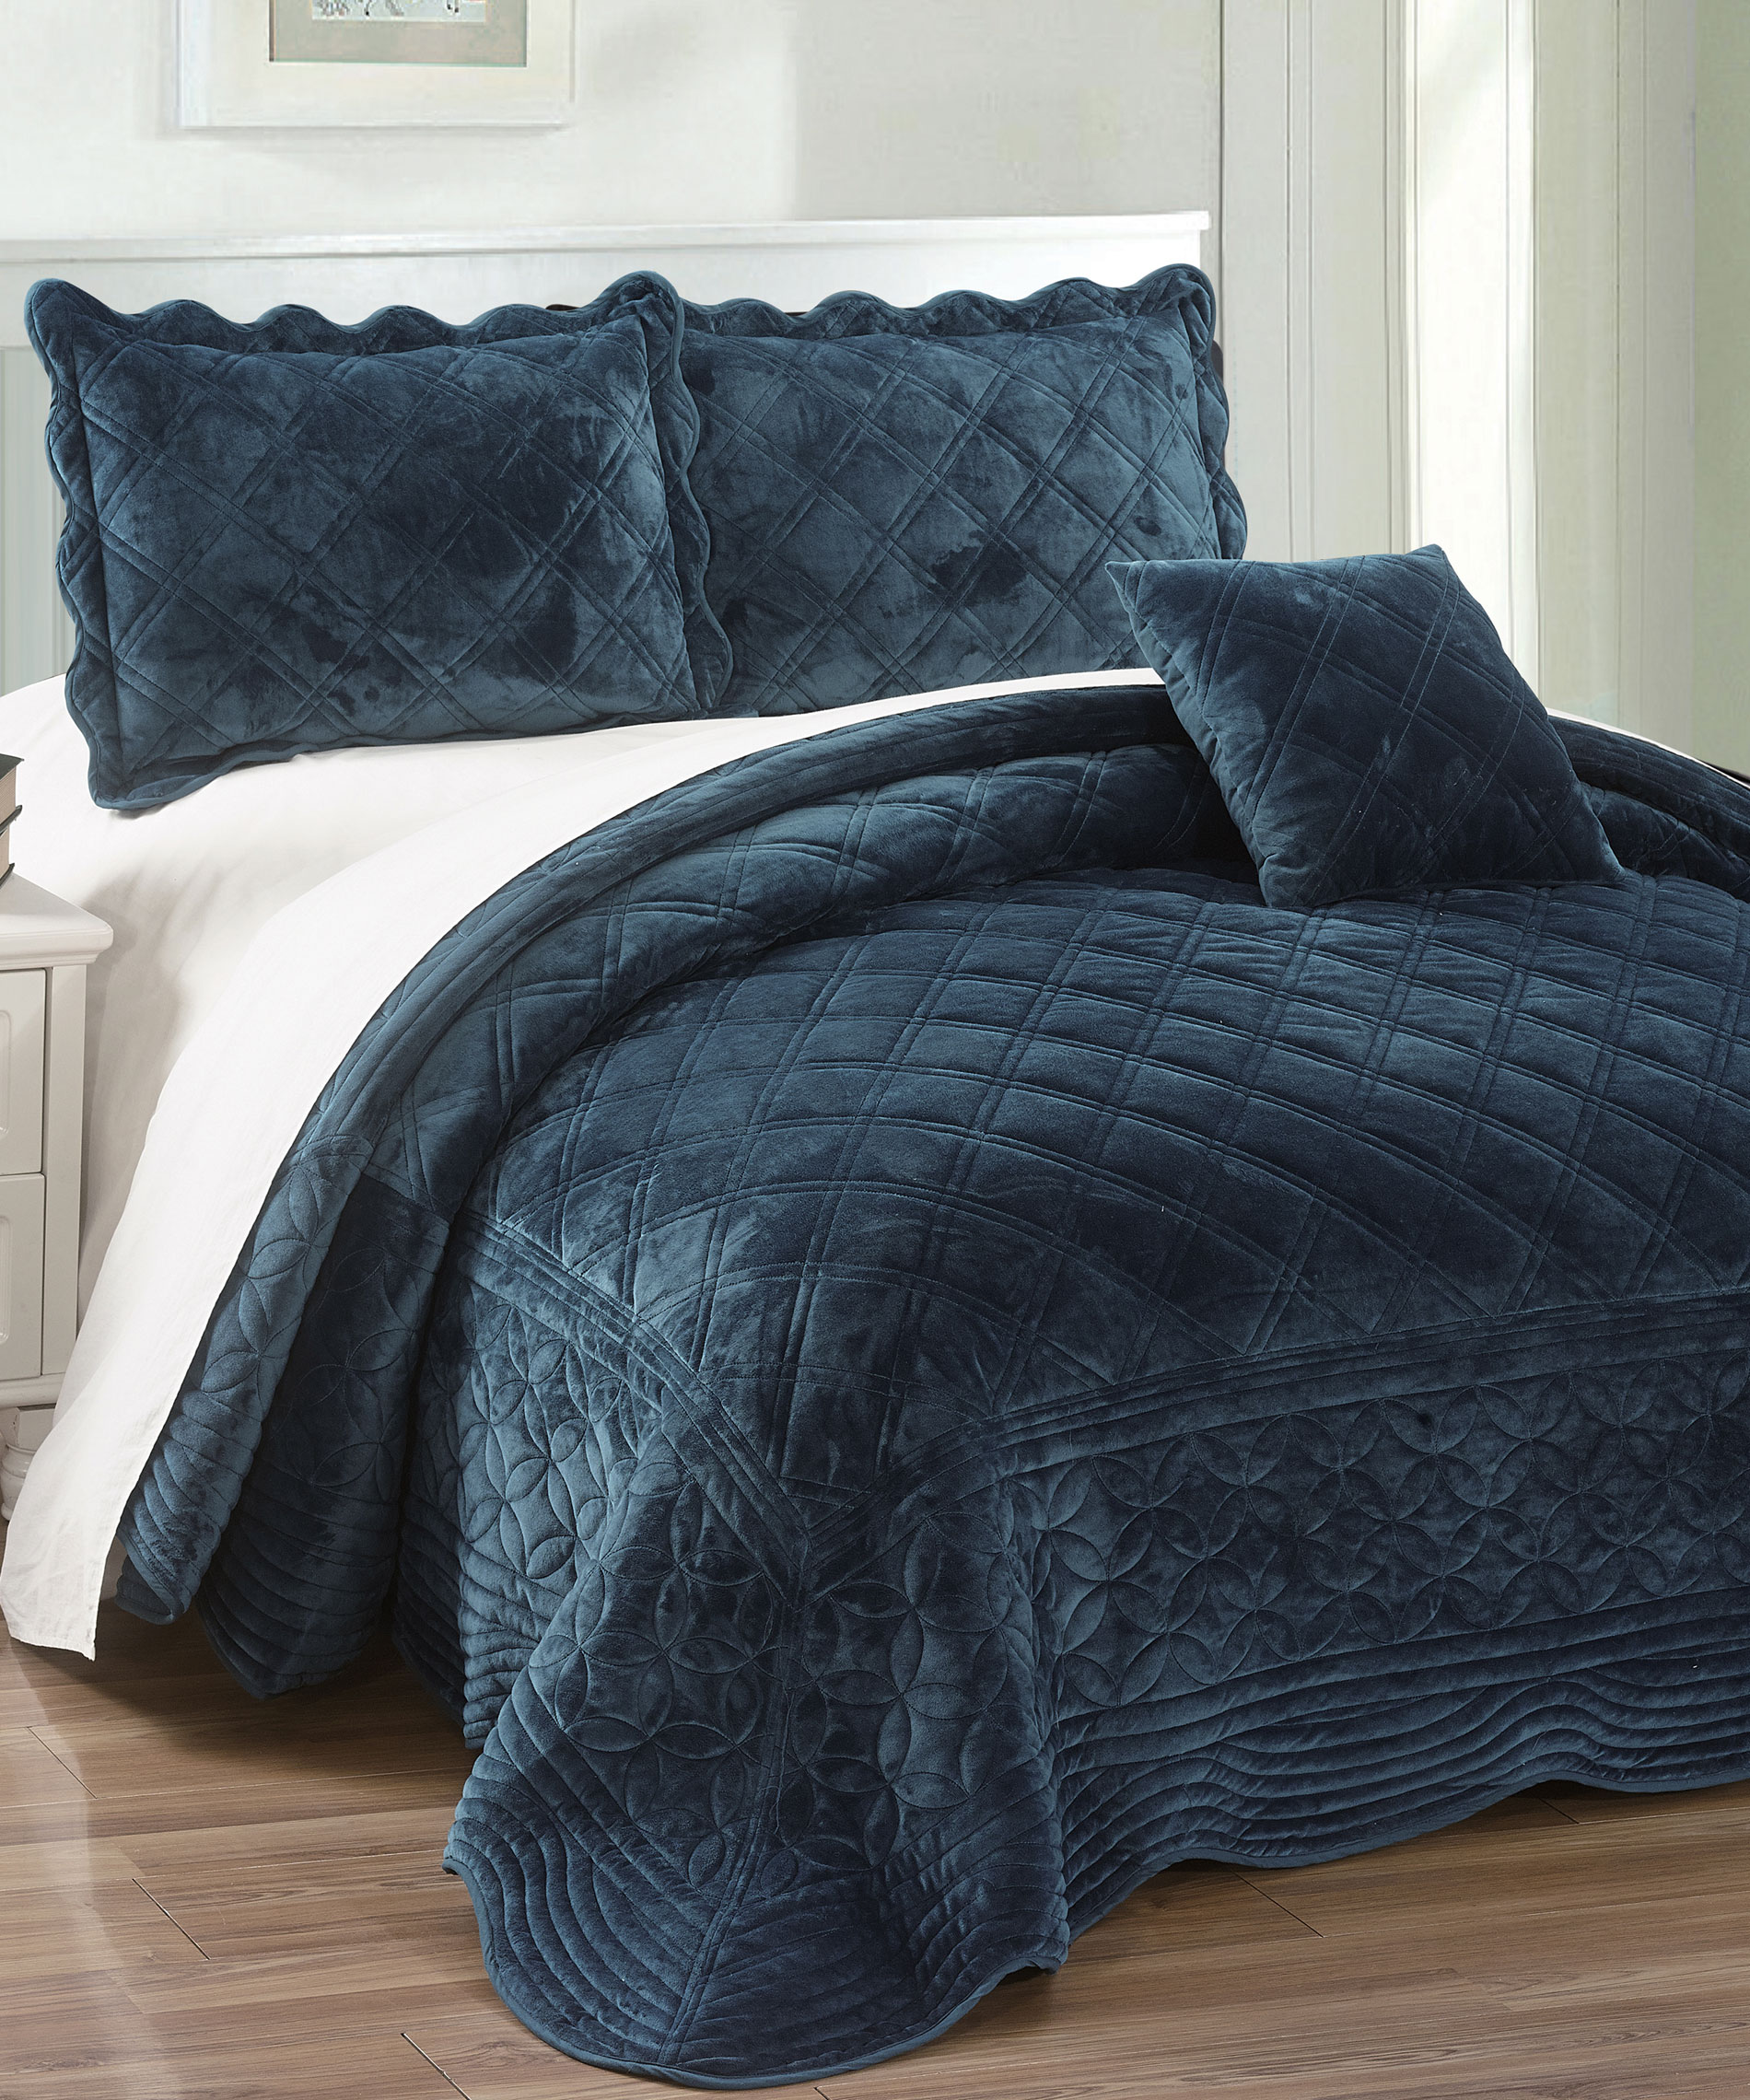 coverlets quilt info compassion template quilted and shams canada quilts sale comforters bedspread for